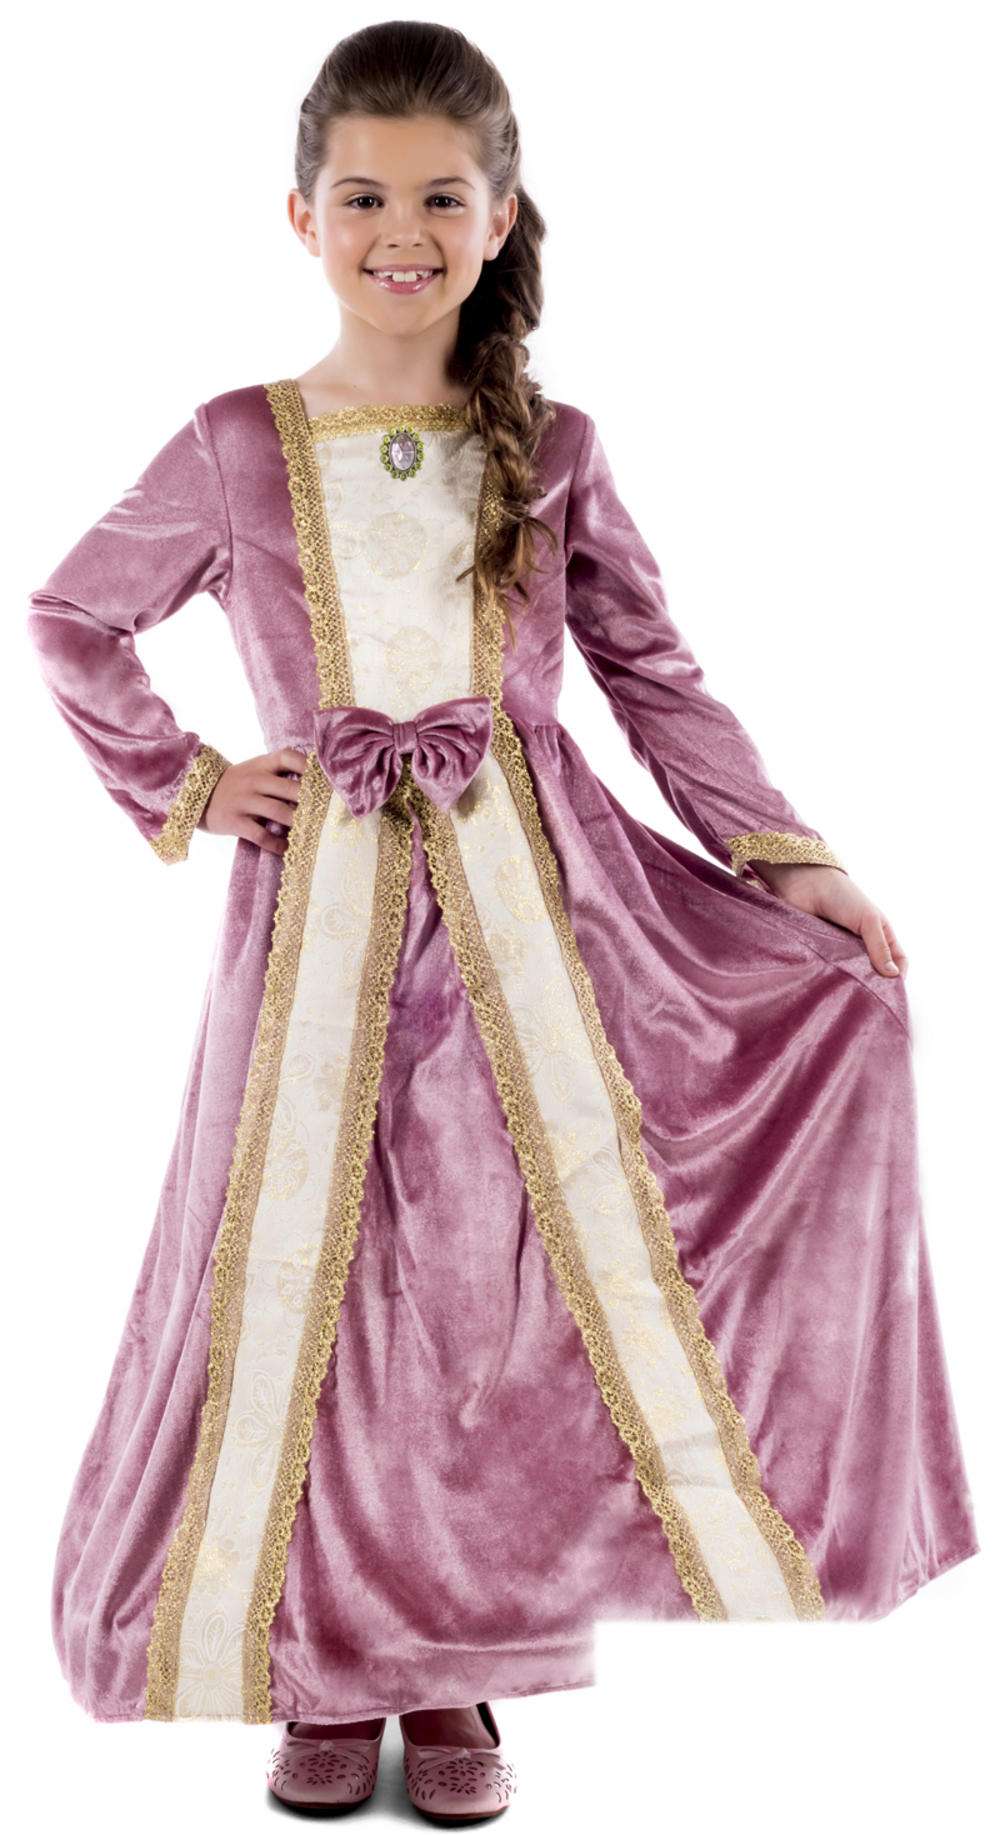 Royal Ball Gown Elizabeth Girls Costume